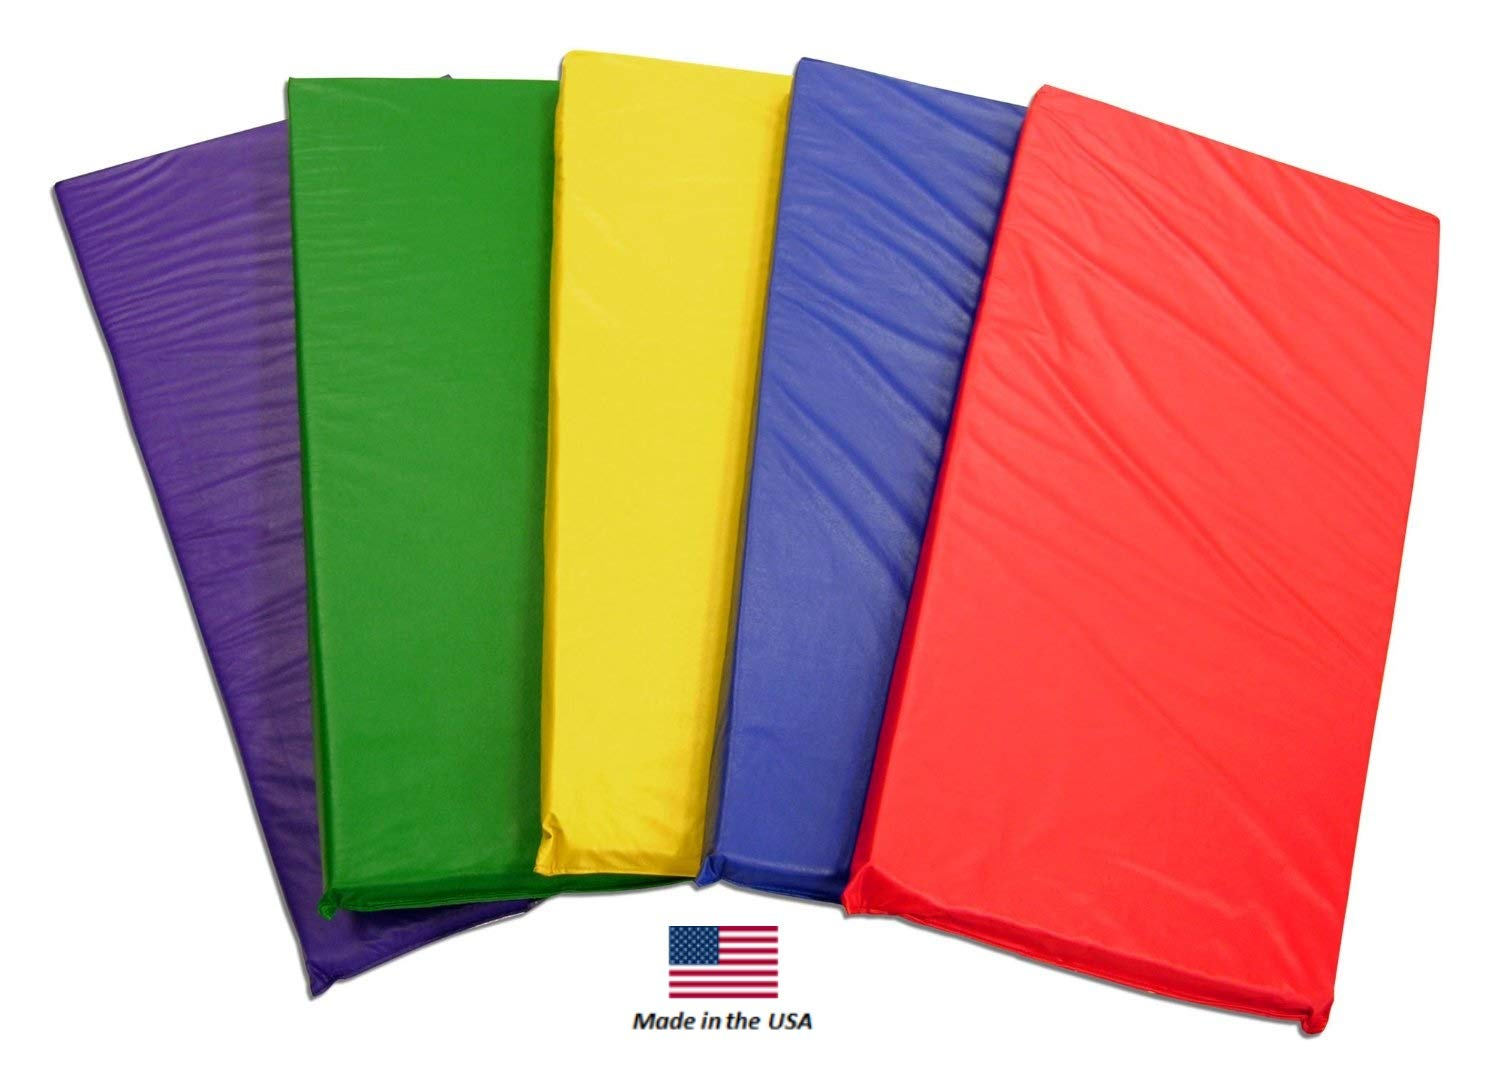 KinderMat Kids Rest Mats (5-Pack), Rainbow Designer, Non-Folding, 2-Inches Thick, 2'' x 22'' x 48'', Red, Yellow, Green, Blue, Purple, School, Home, Daycare